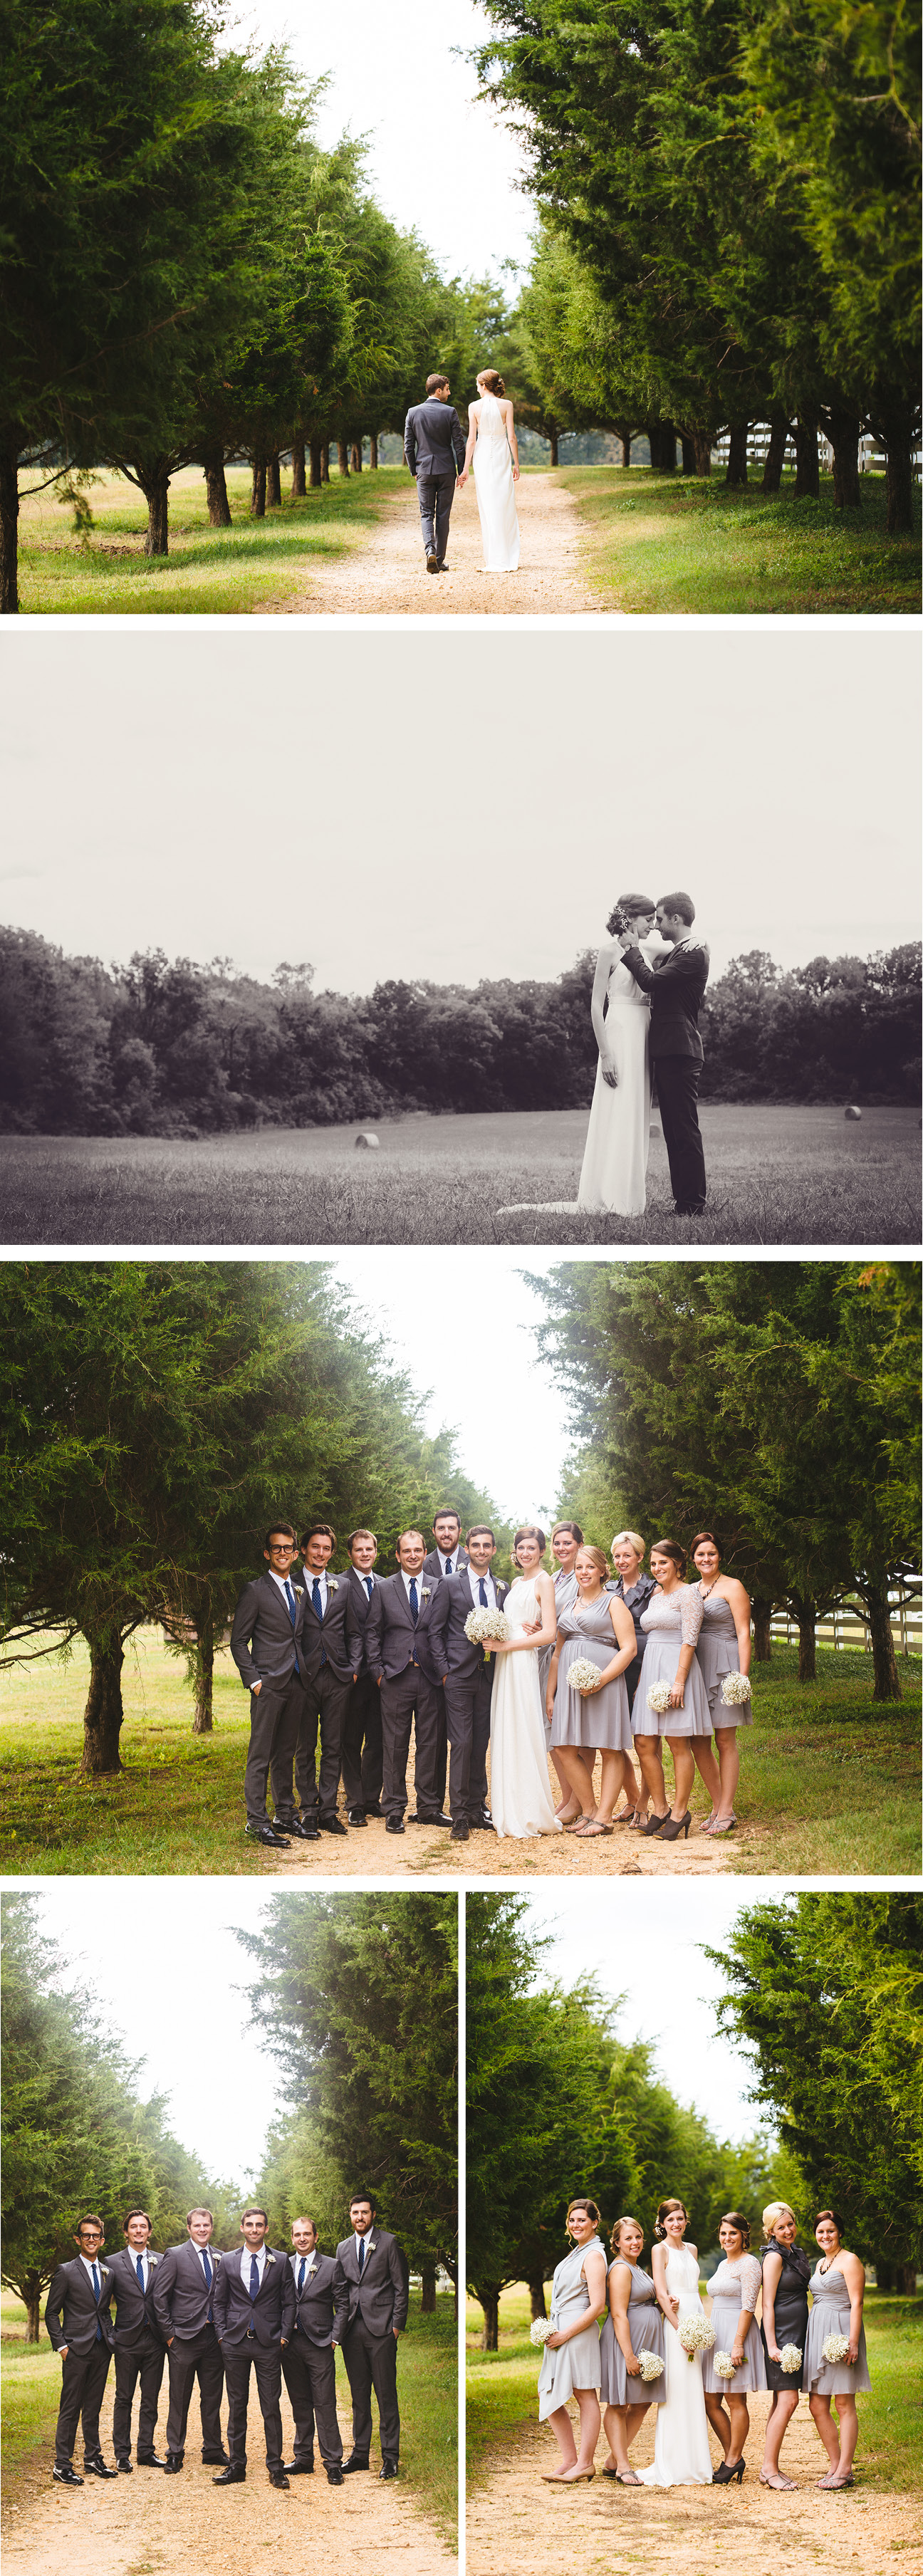 CK-Photo-Nashville-Wedding-Photographer-TN8.jpg